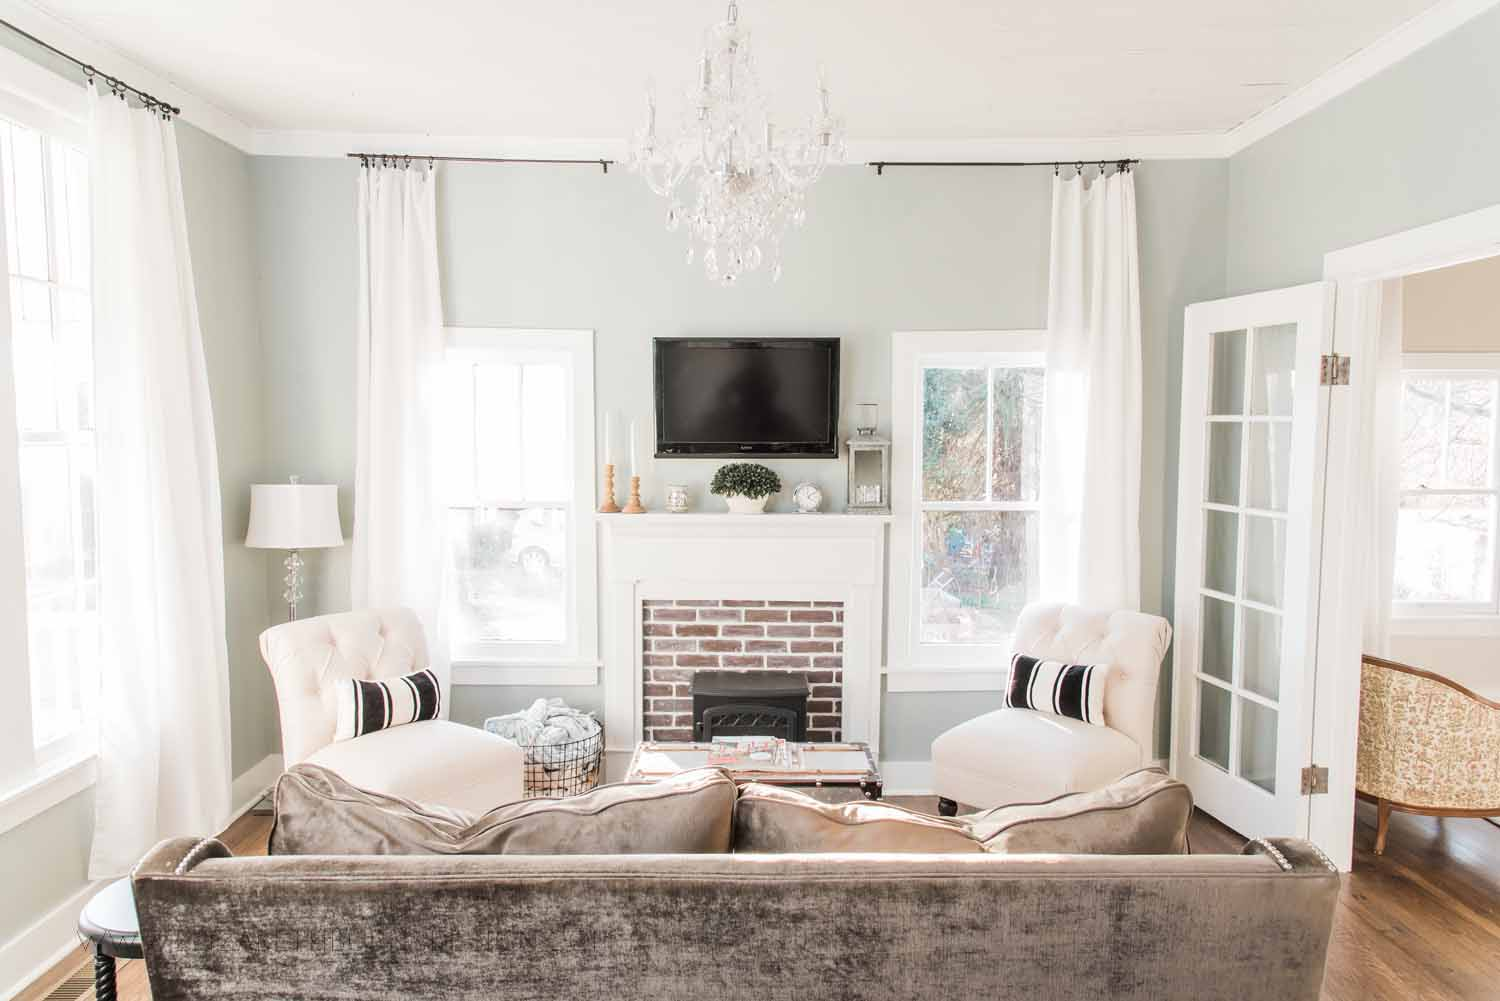 Elizabeth Burns Design Raleigh Interior Designer  Farmhouse Fixer Upper Cottage Renovation, Sherwin Williams Magnetic Gray SW 7058 Traditional Living Room (2).jpg